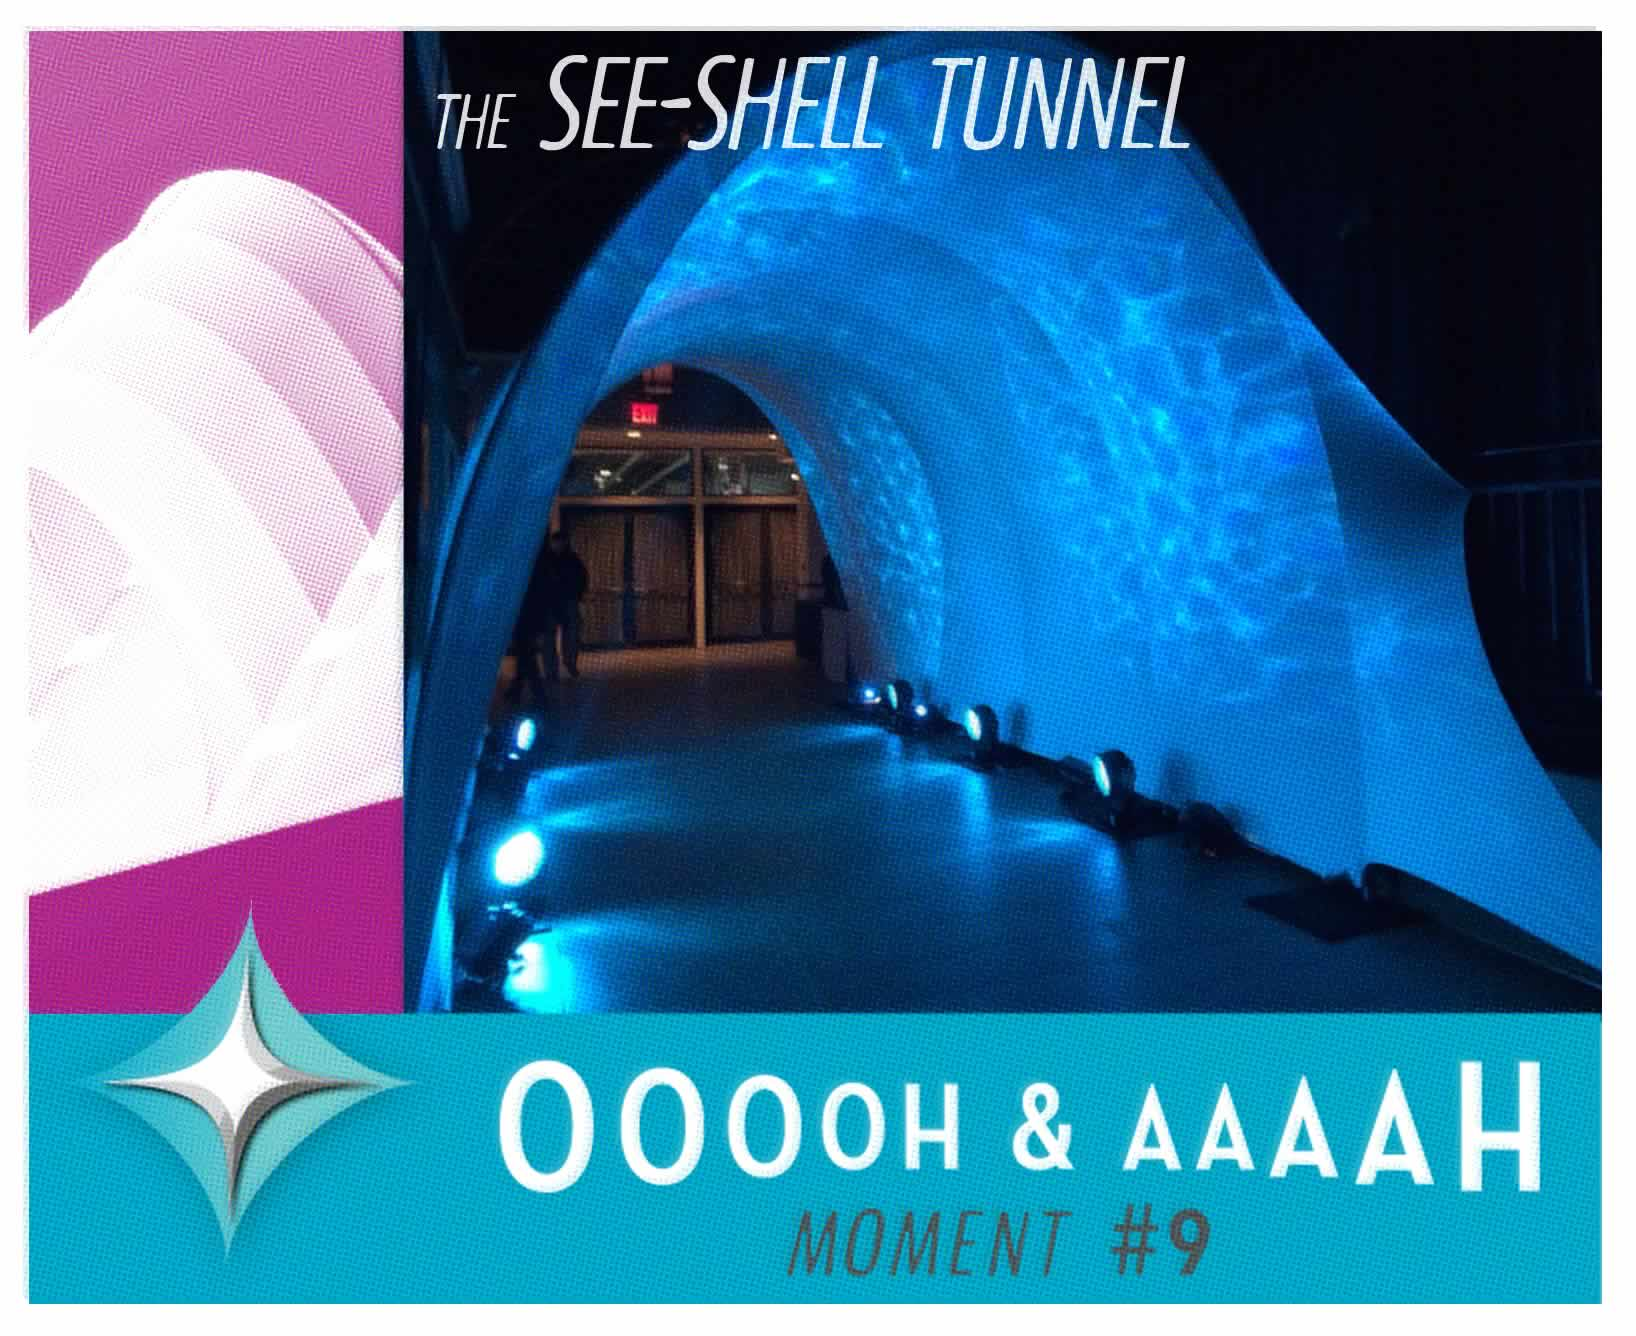 The SeeShell Tunnel